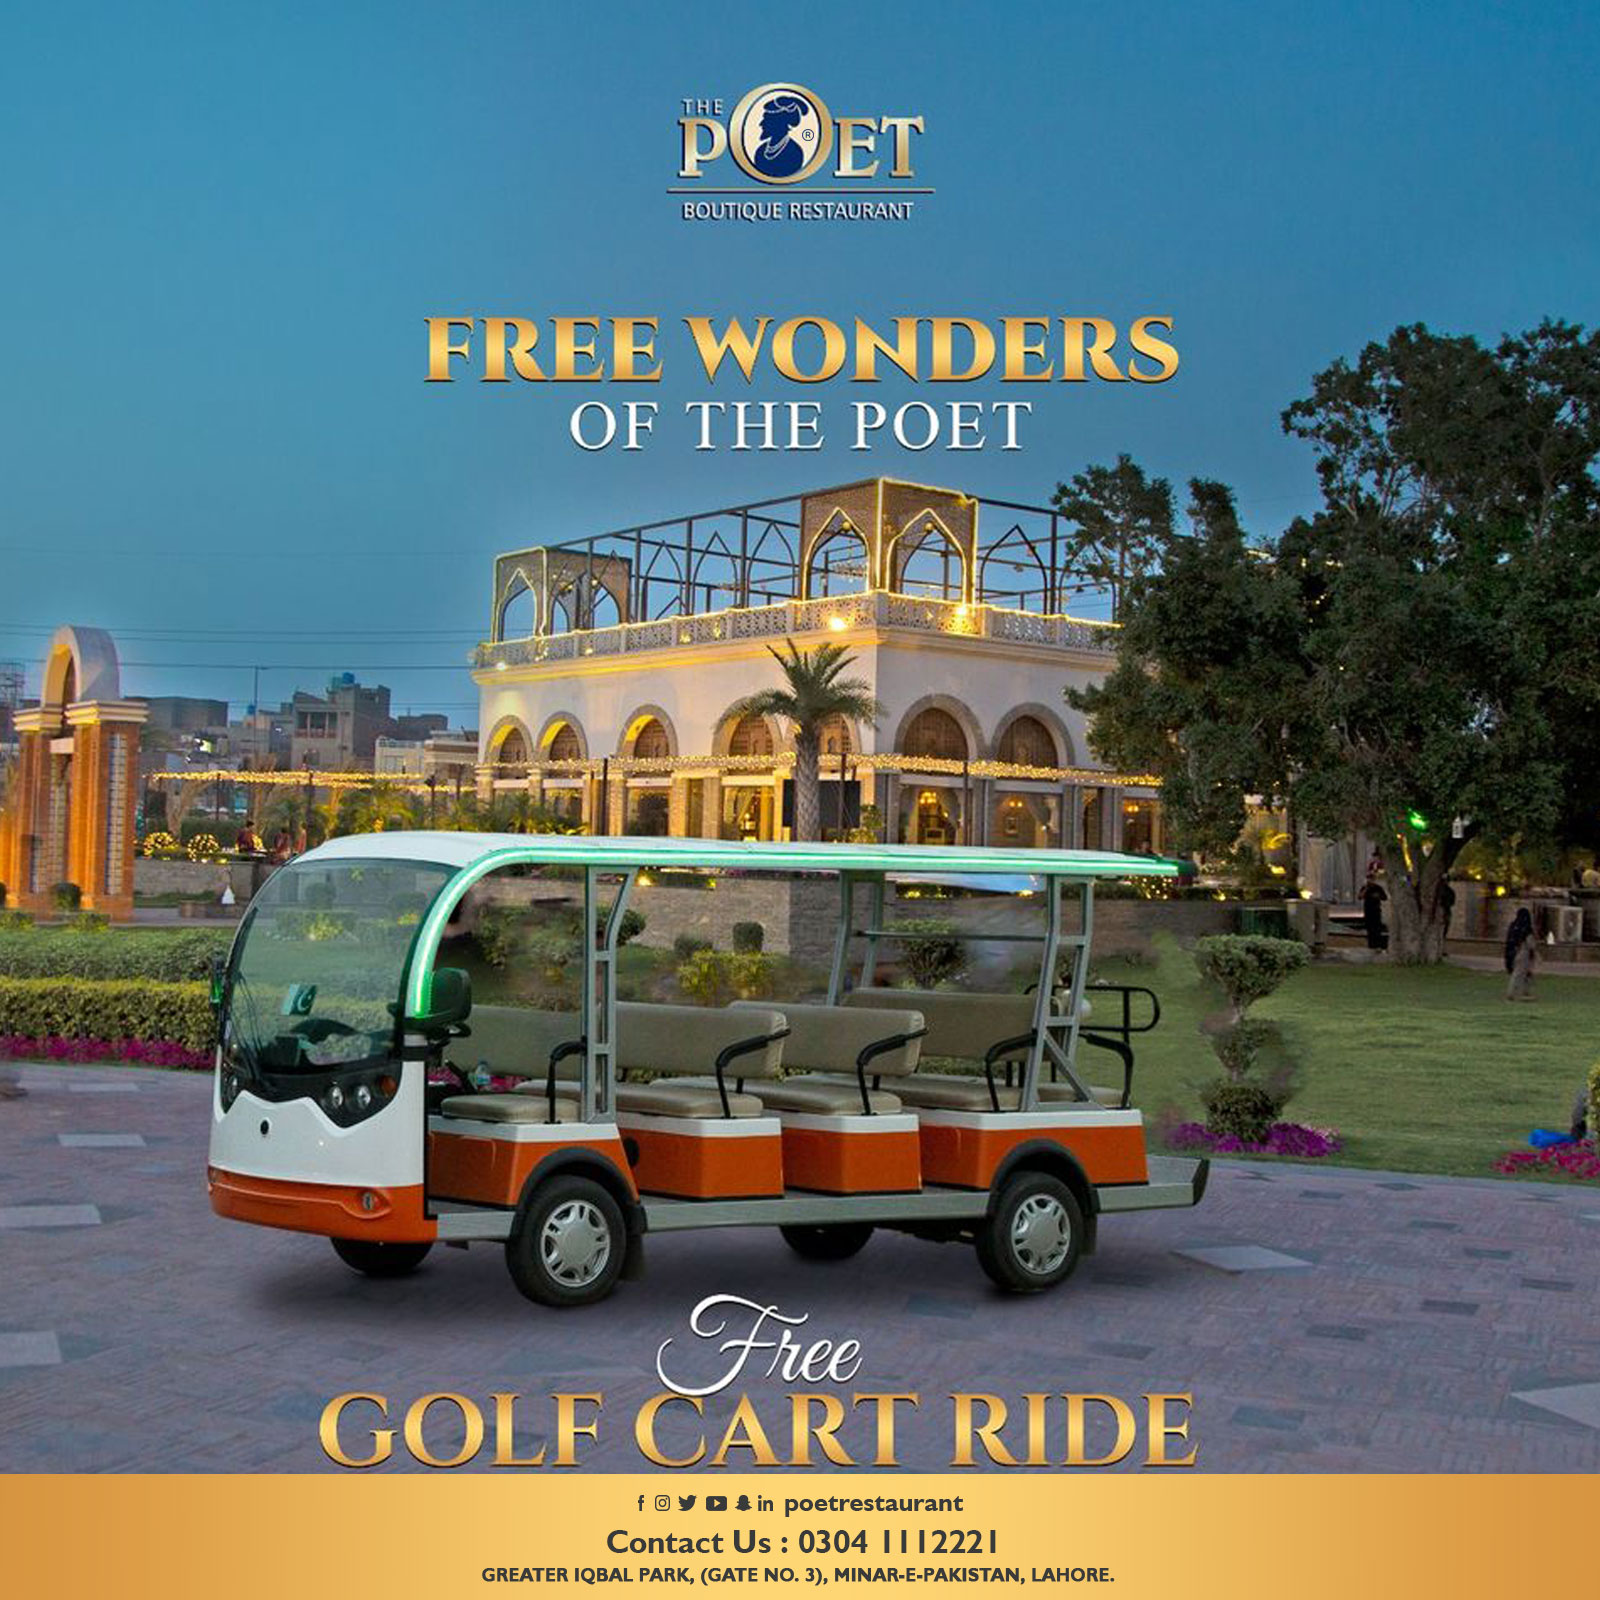 Free Golf Cart Ride at The Poet Restaurant